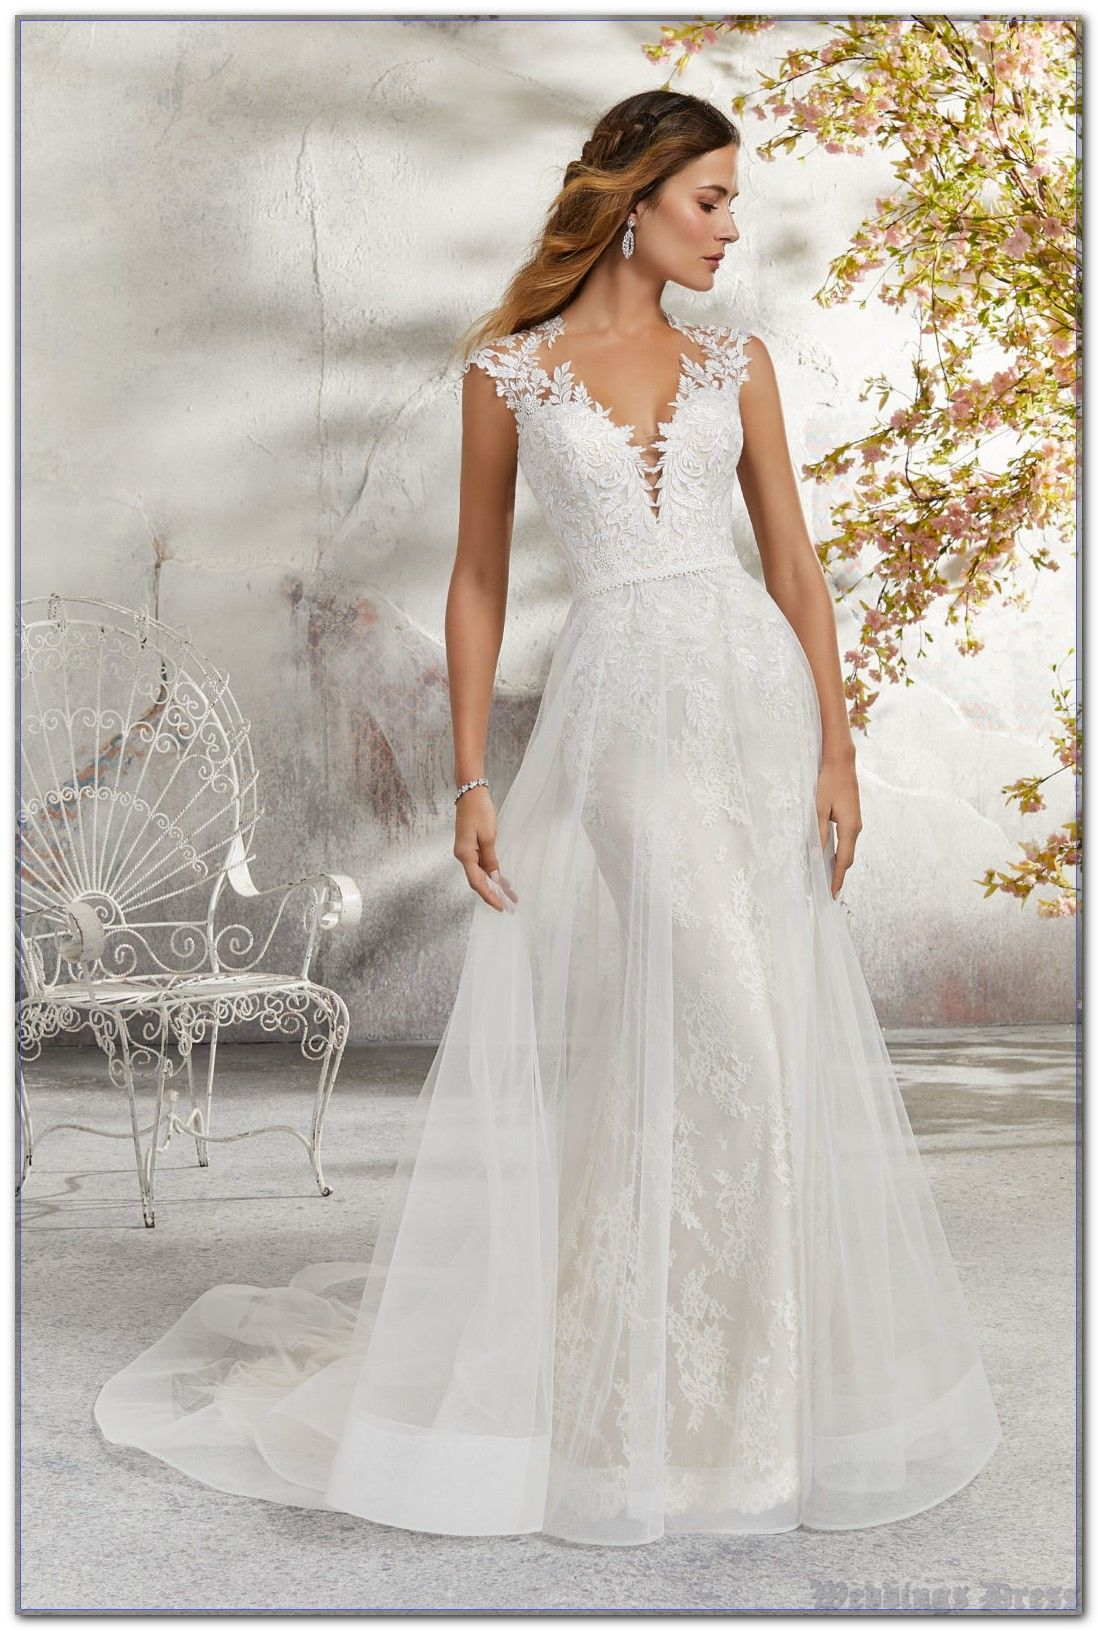 10 Secret Things You Didn't Know About Weddings Dress